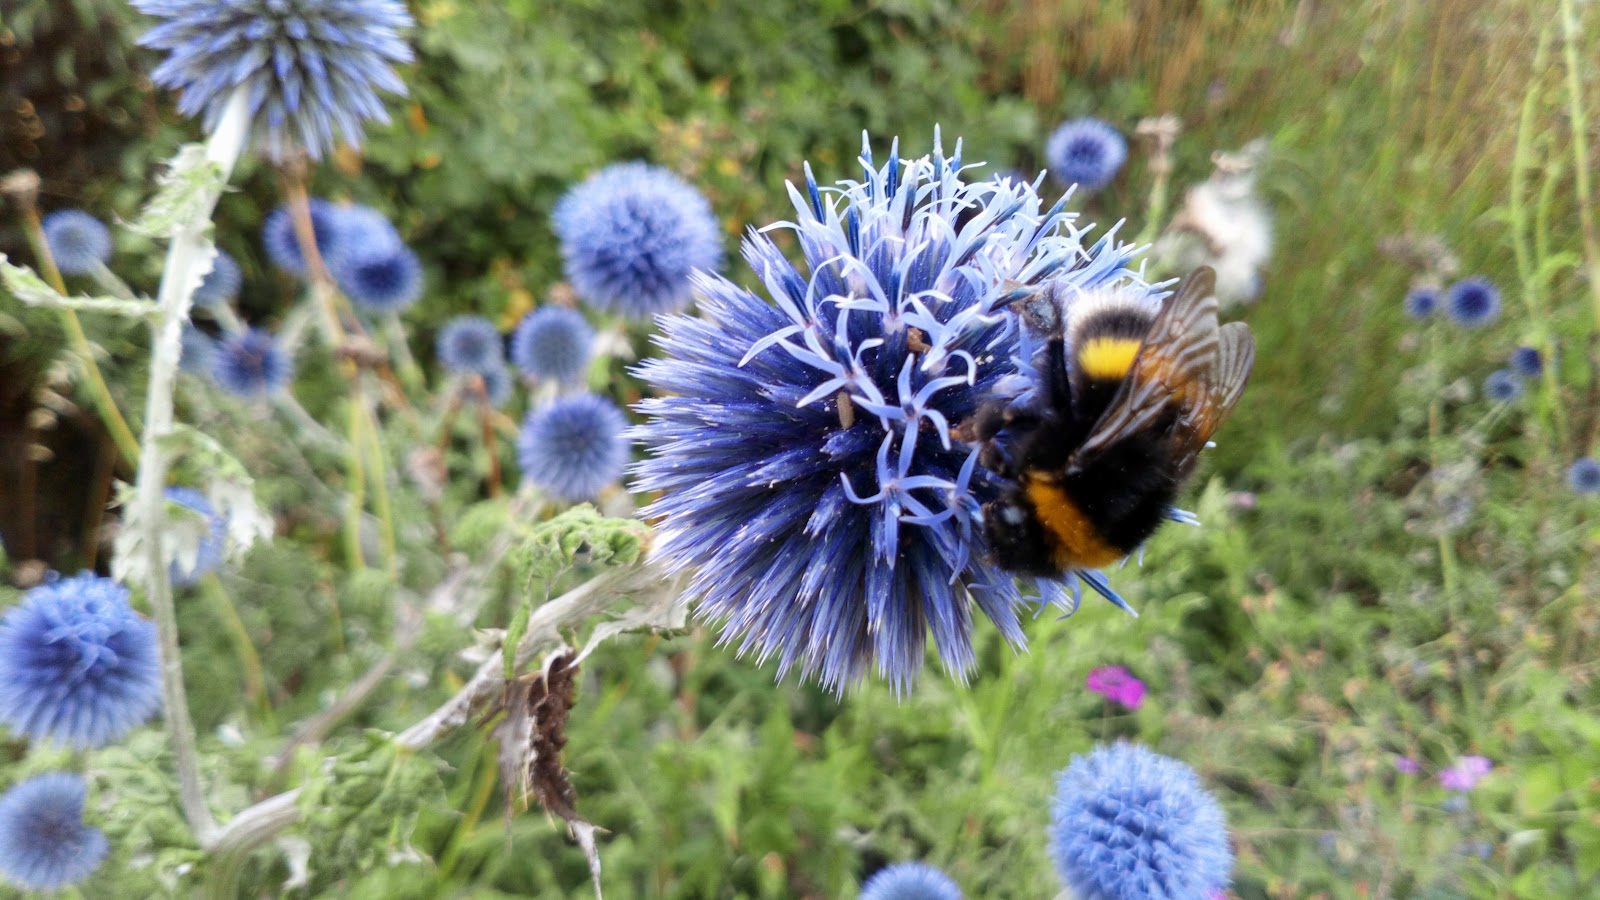 A bumblebee crawling across a blue flower.